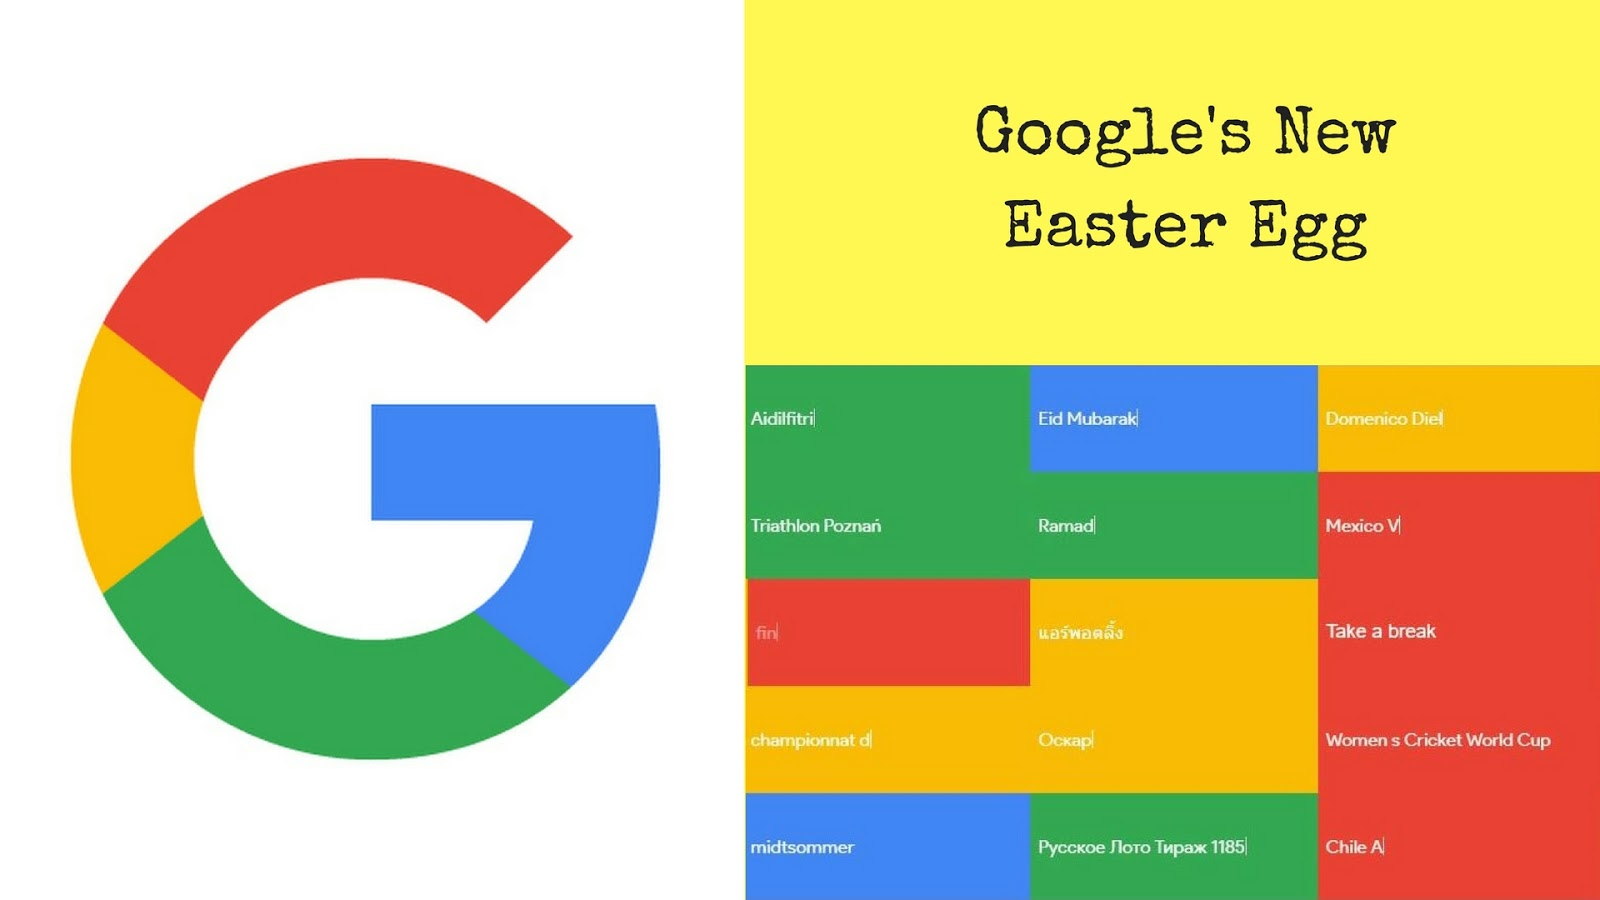 google new easter egg blog post by mayukh datta